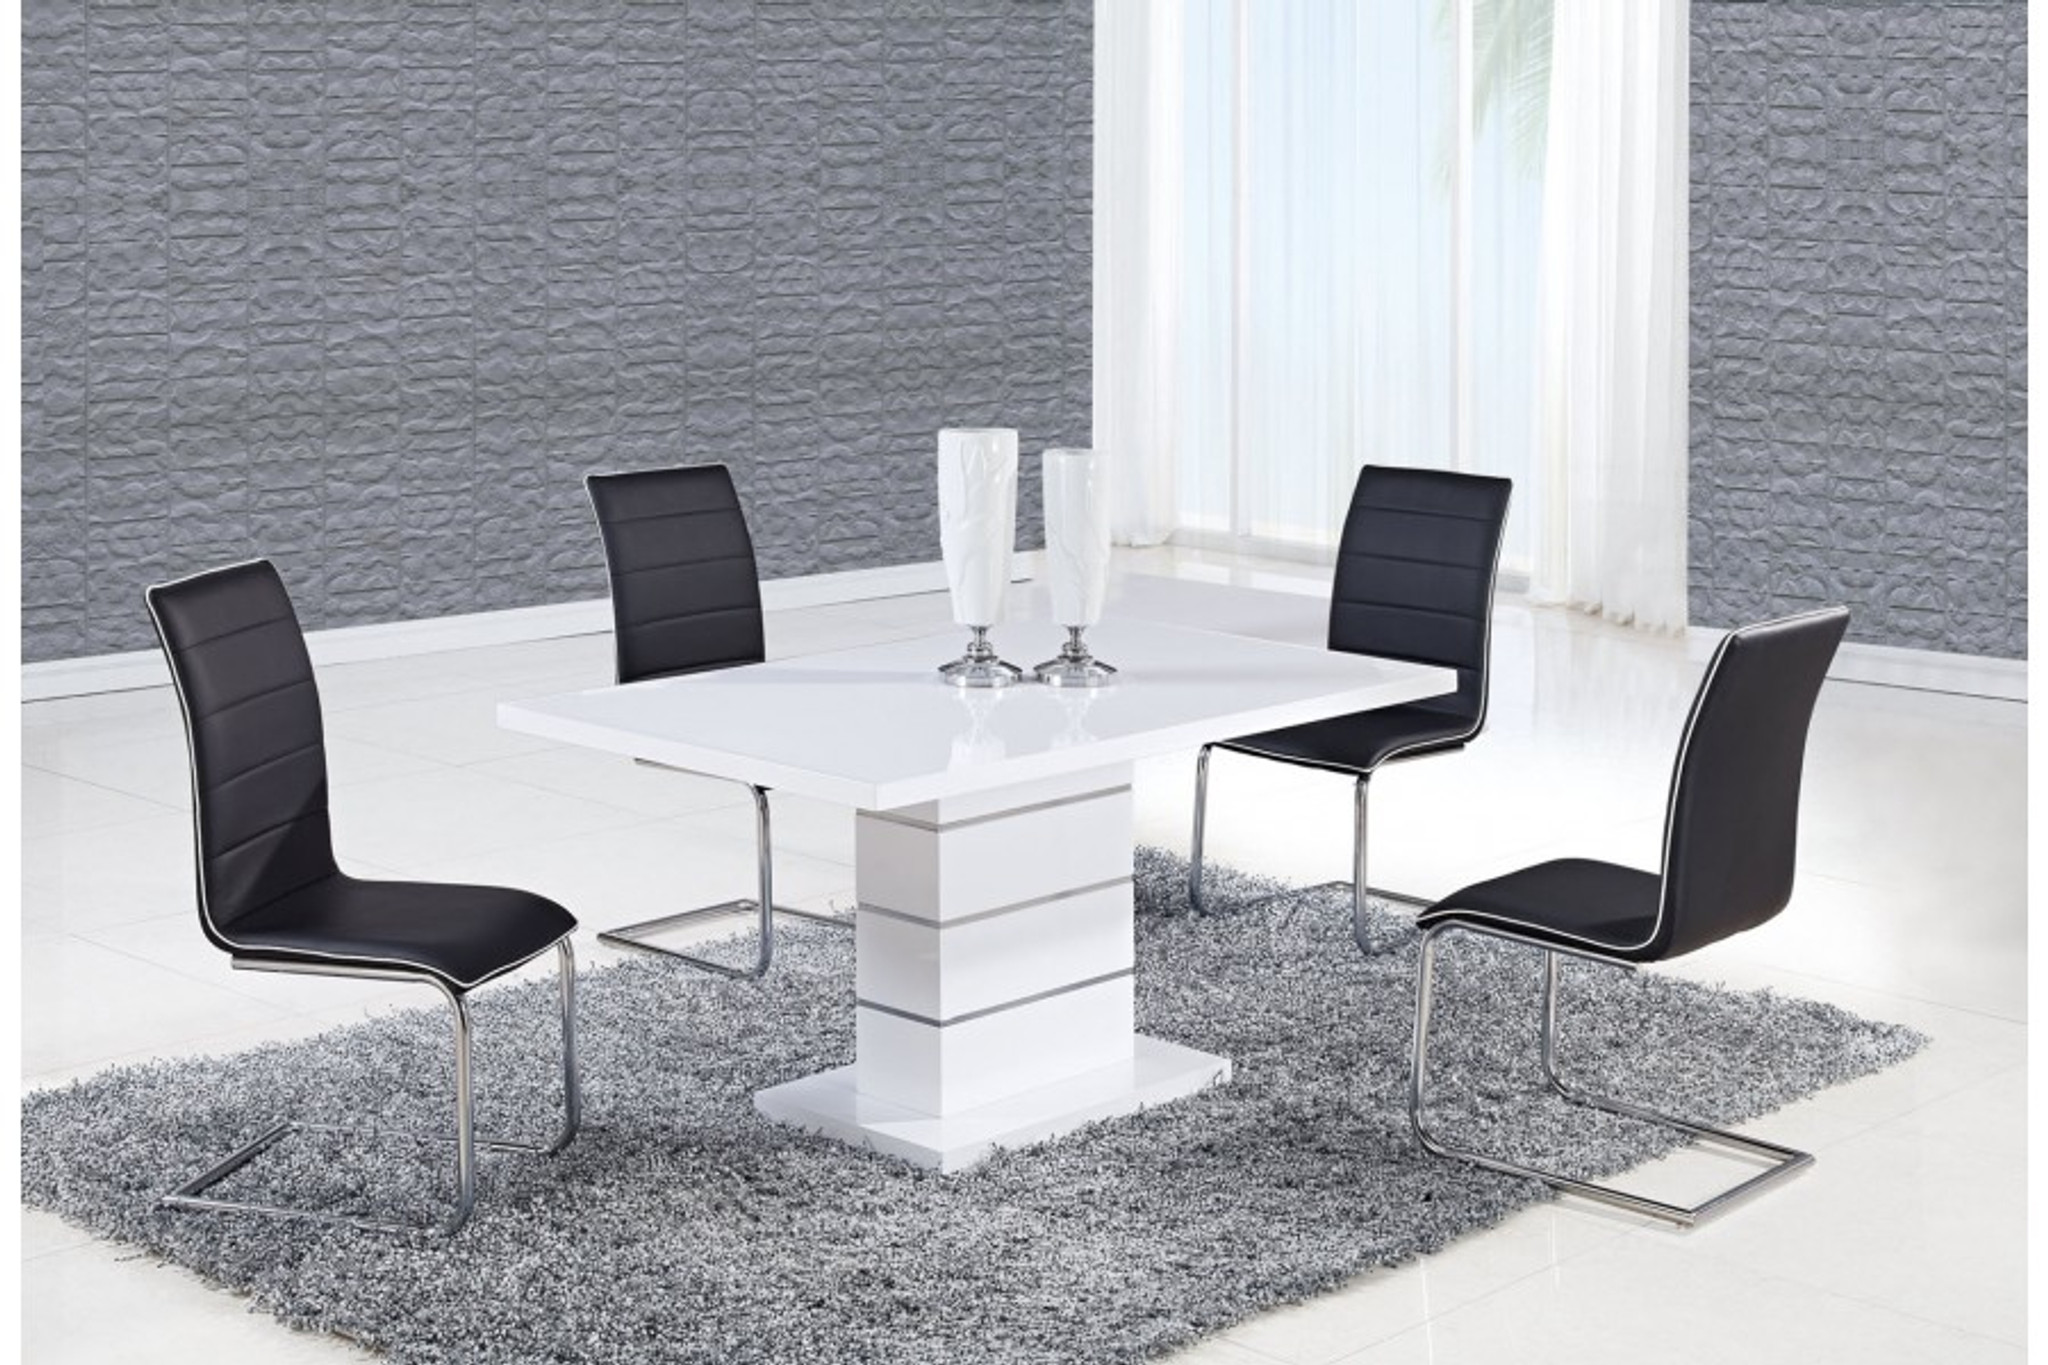 Alexia 5 Pcs Contemporary Set 4 Black Chairs And White Modern Table Kassa Mall Home Furniture